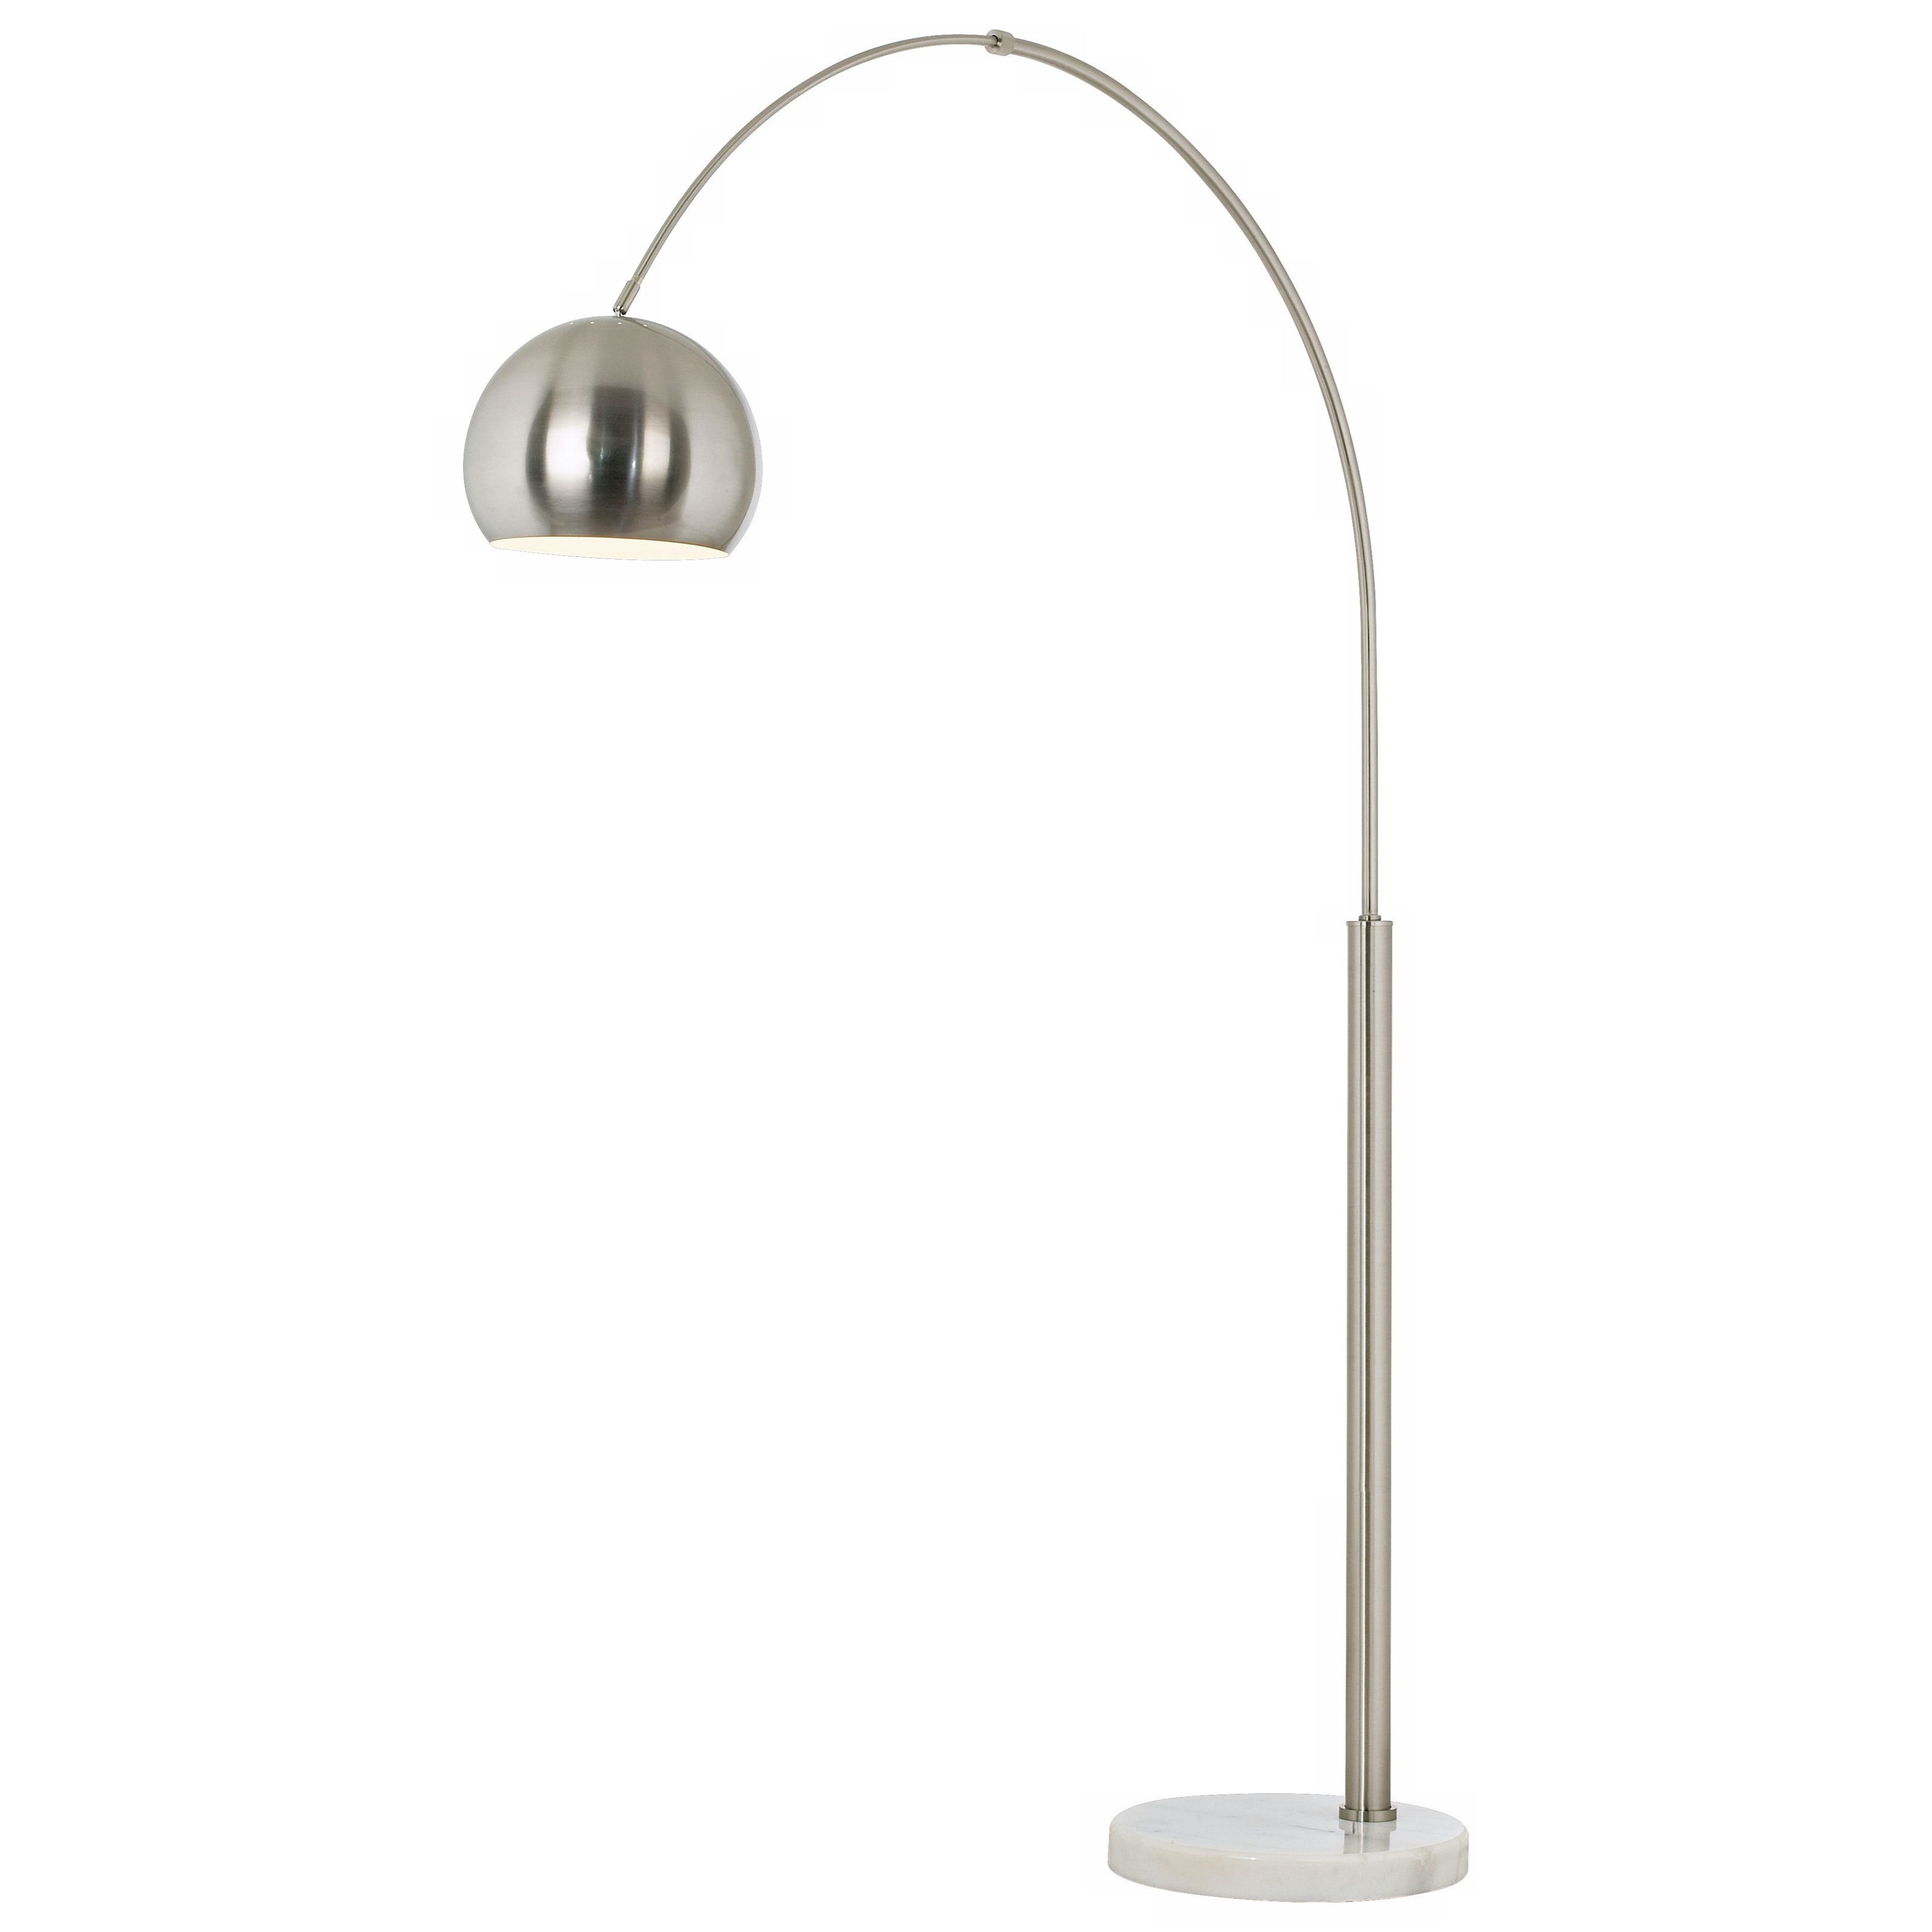 PCL FLOOR LAMPS Basque Floor Arc Lamp-Nickel by PCL LIGHTING at Walker's Furniture